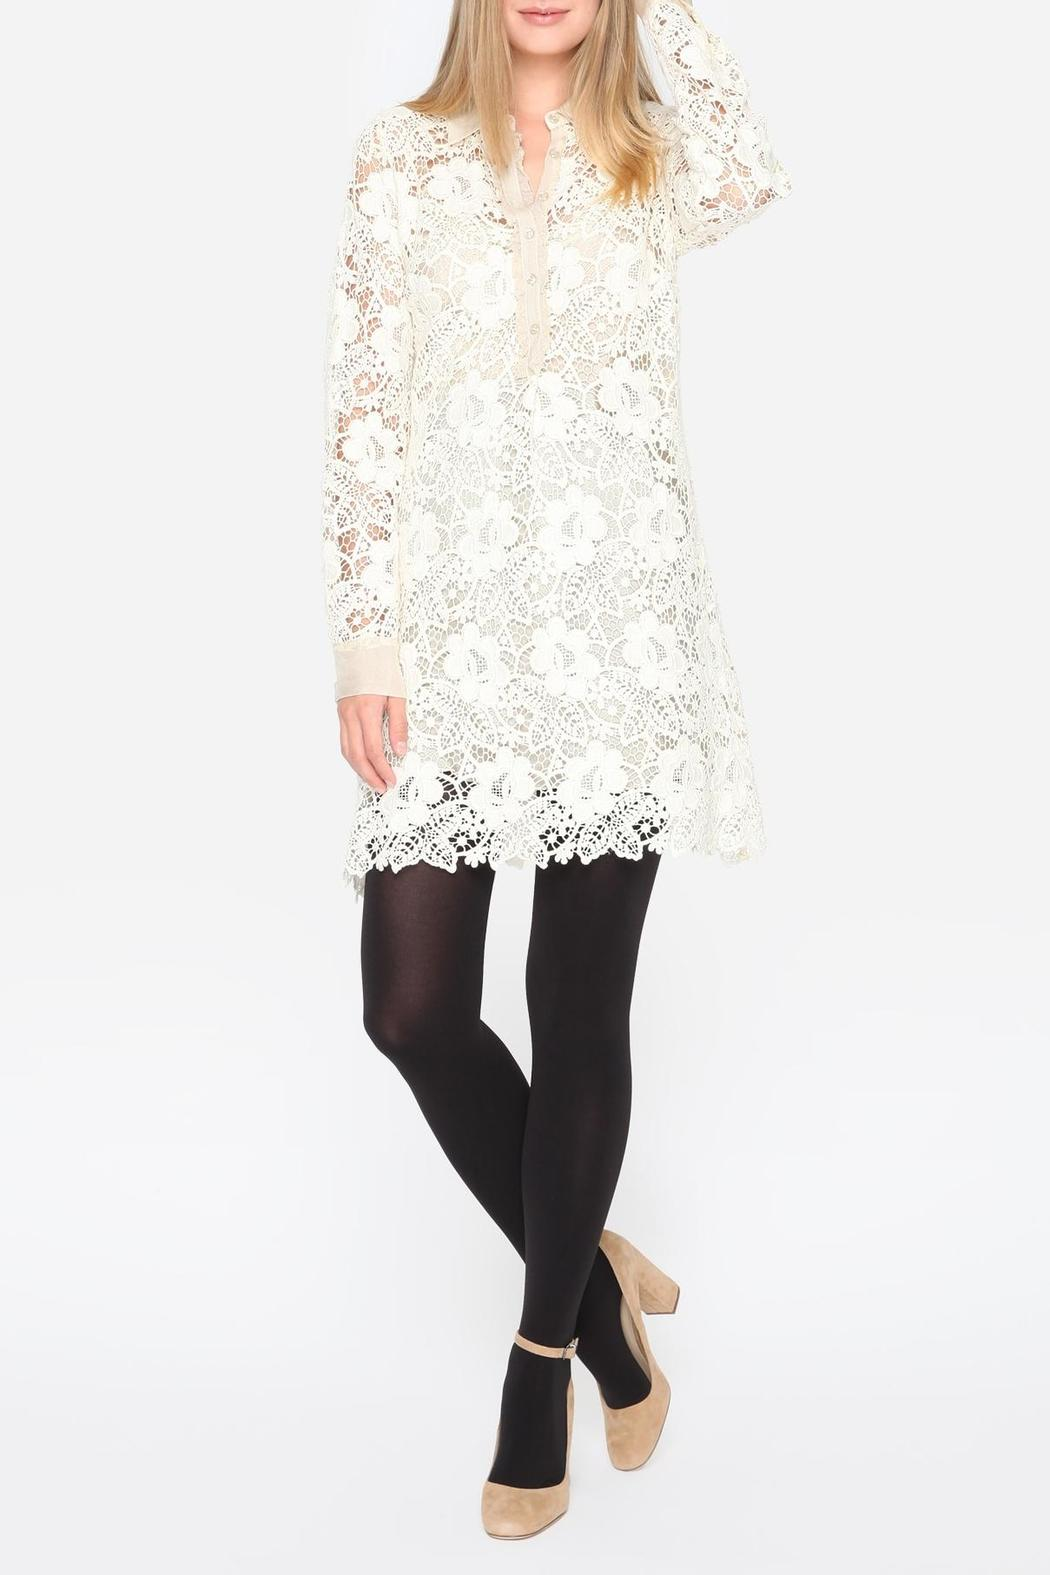 Johnny Was Crochet Sleeve Dress - Front Cropped Image